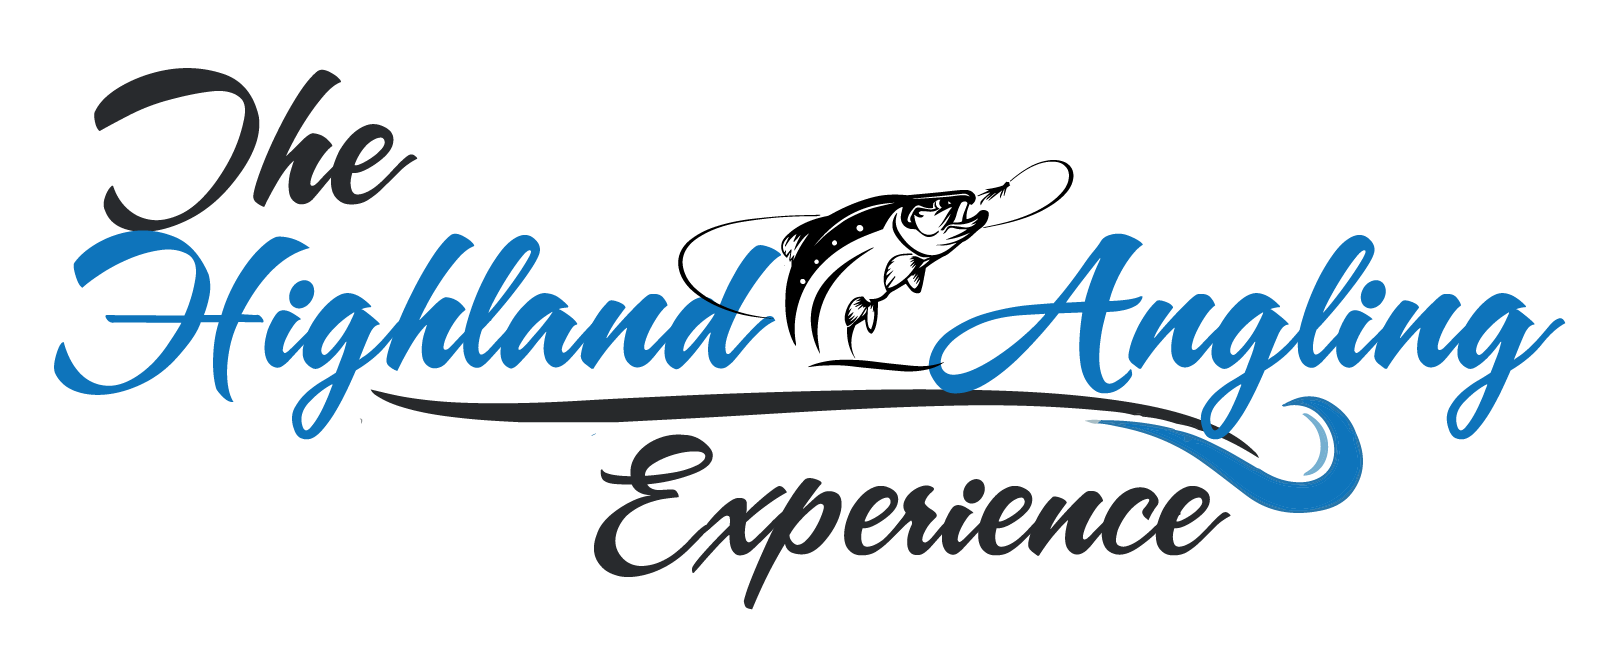 The Highland Angling Experience